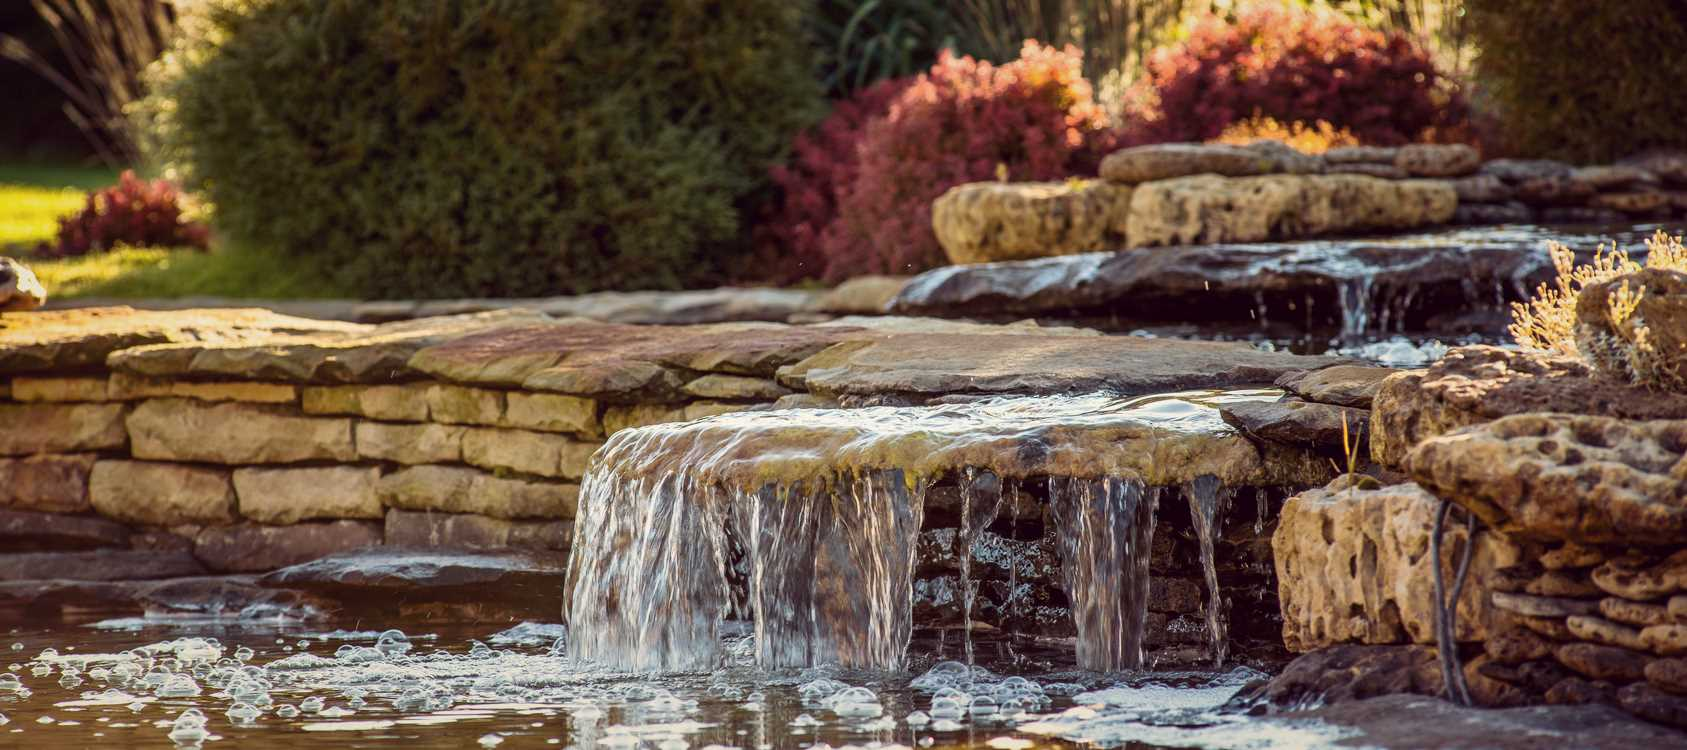 Landscaping Boulders Springfield Mo : Spice up your landscaping with water features springfield mo